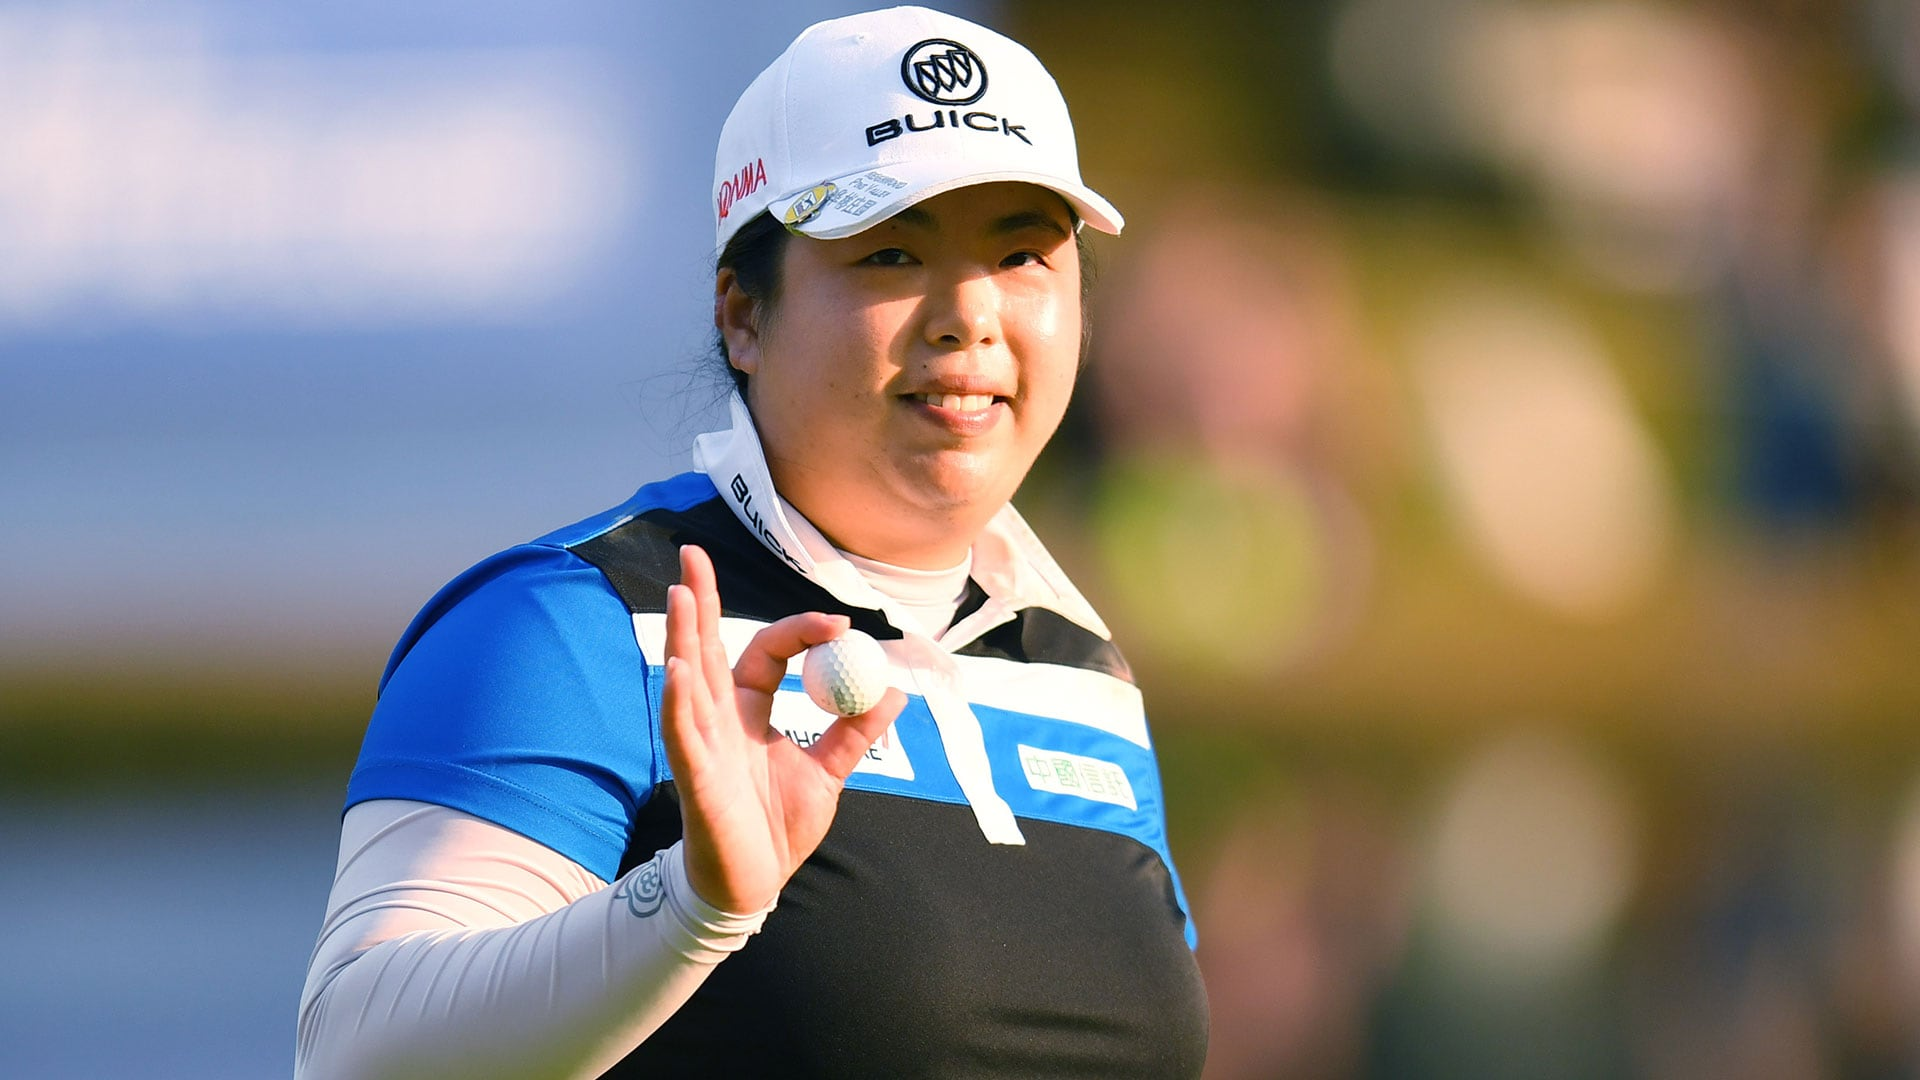 Shanshan Feng during Round 2 at the 2017 Japan Classic.